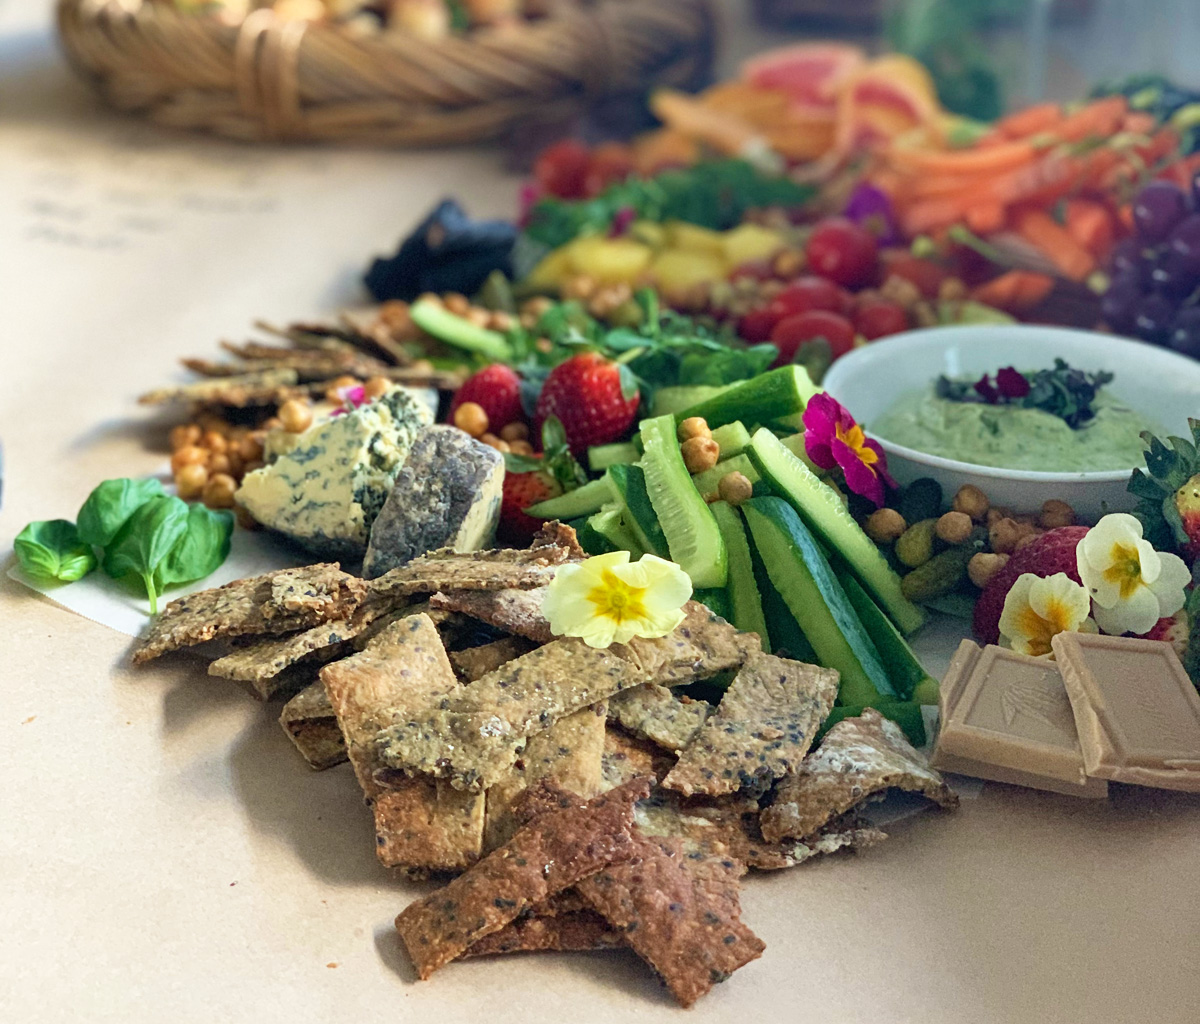 A grazing table covered in butcher paper is laden with vegetables, crackers, herbs, and cheeses.